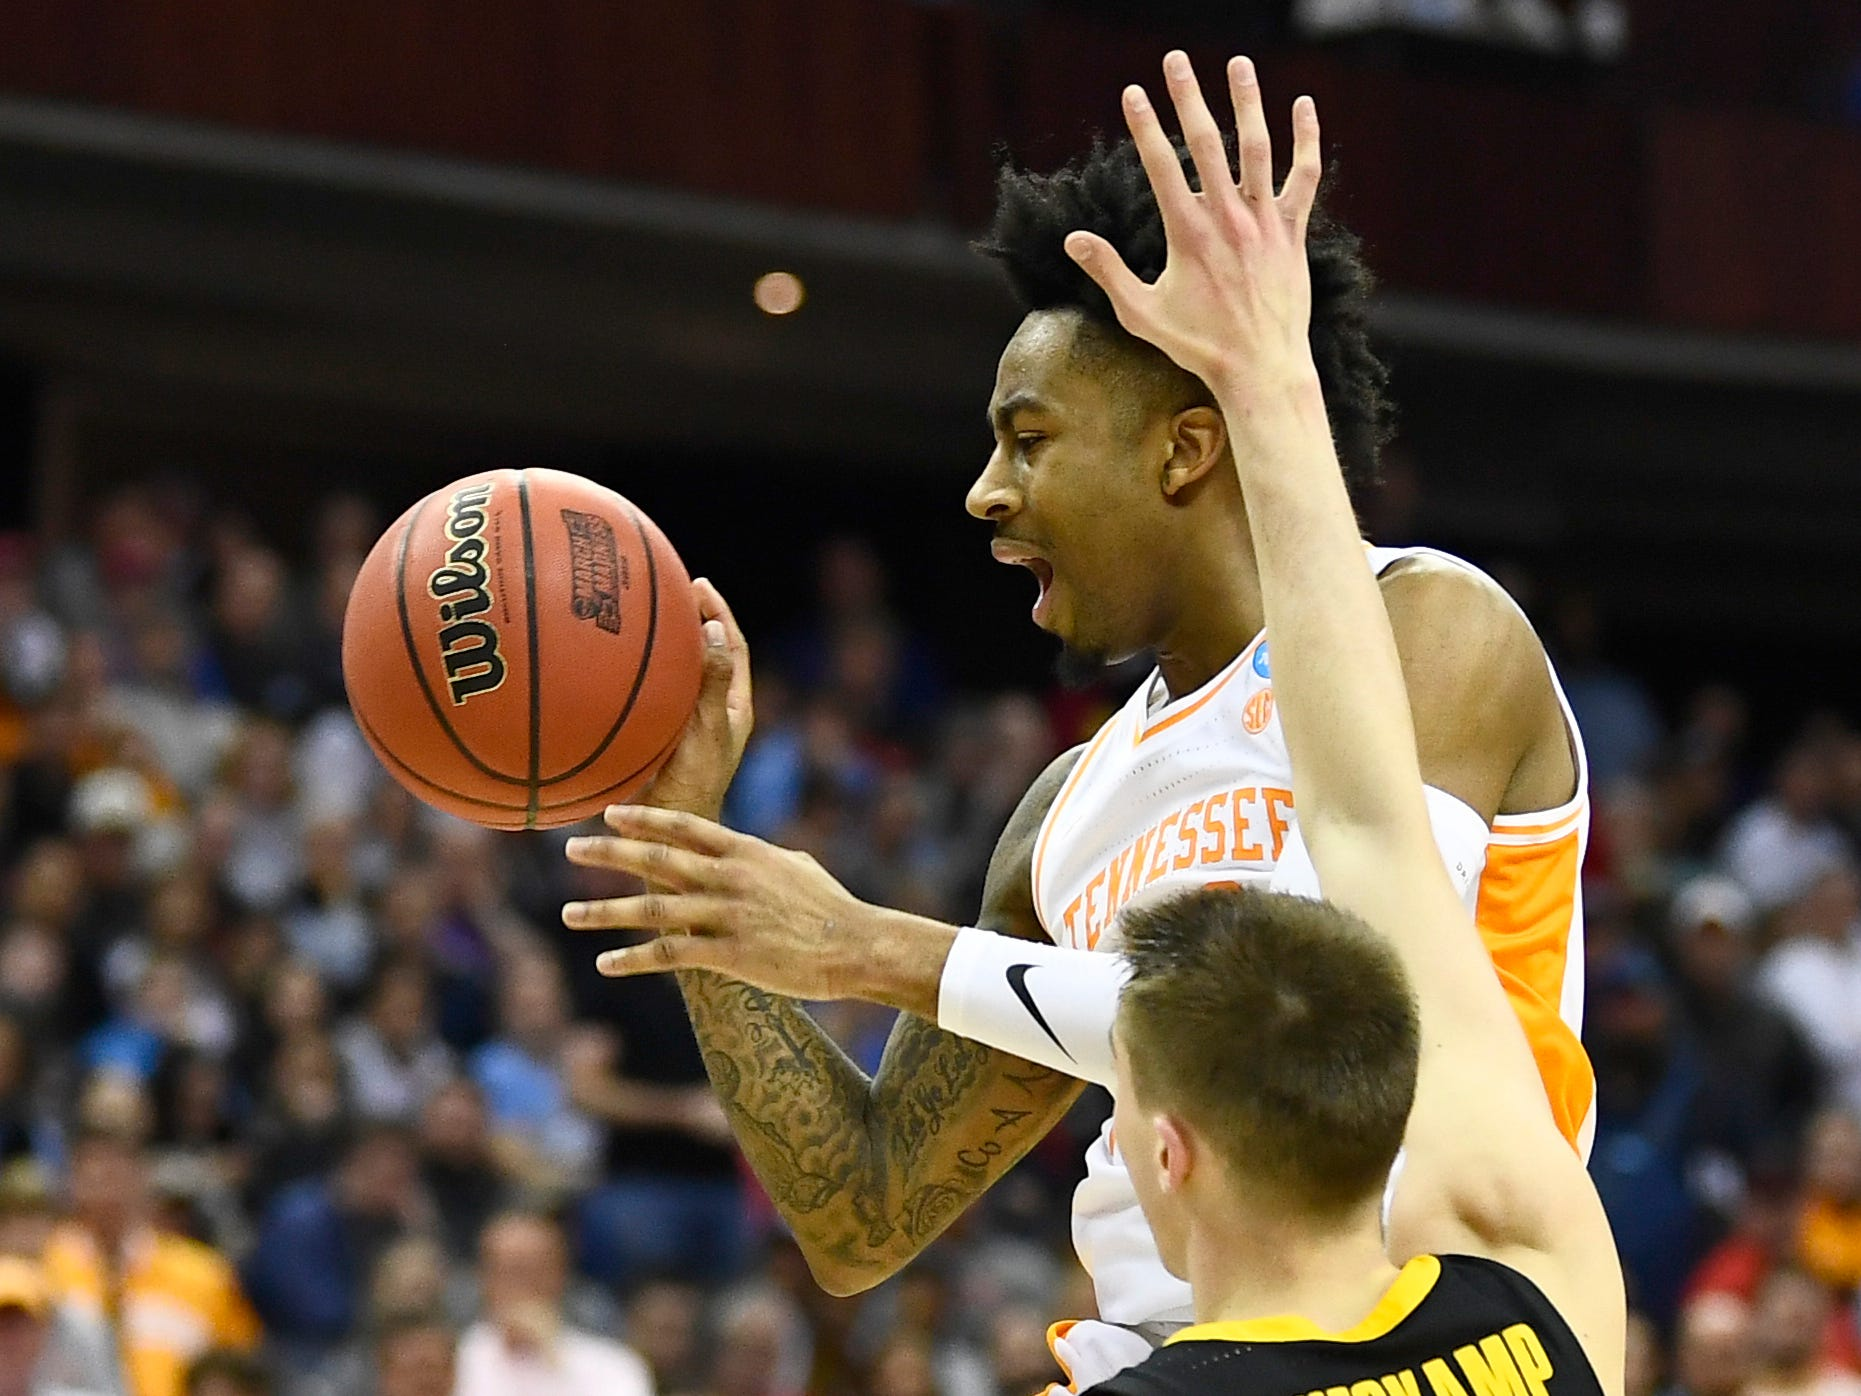 Tennessee guard Jordan Bowden (23) looks to pass the ball defended byIowa guard Joe Wieskamp (10) during the second half in the second-round game of the NCAA Tournament at Nationwide Arena in Columbus, Ohio, Sunday, March 24, 2019.